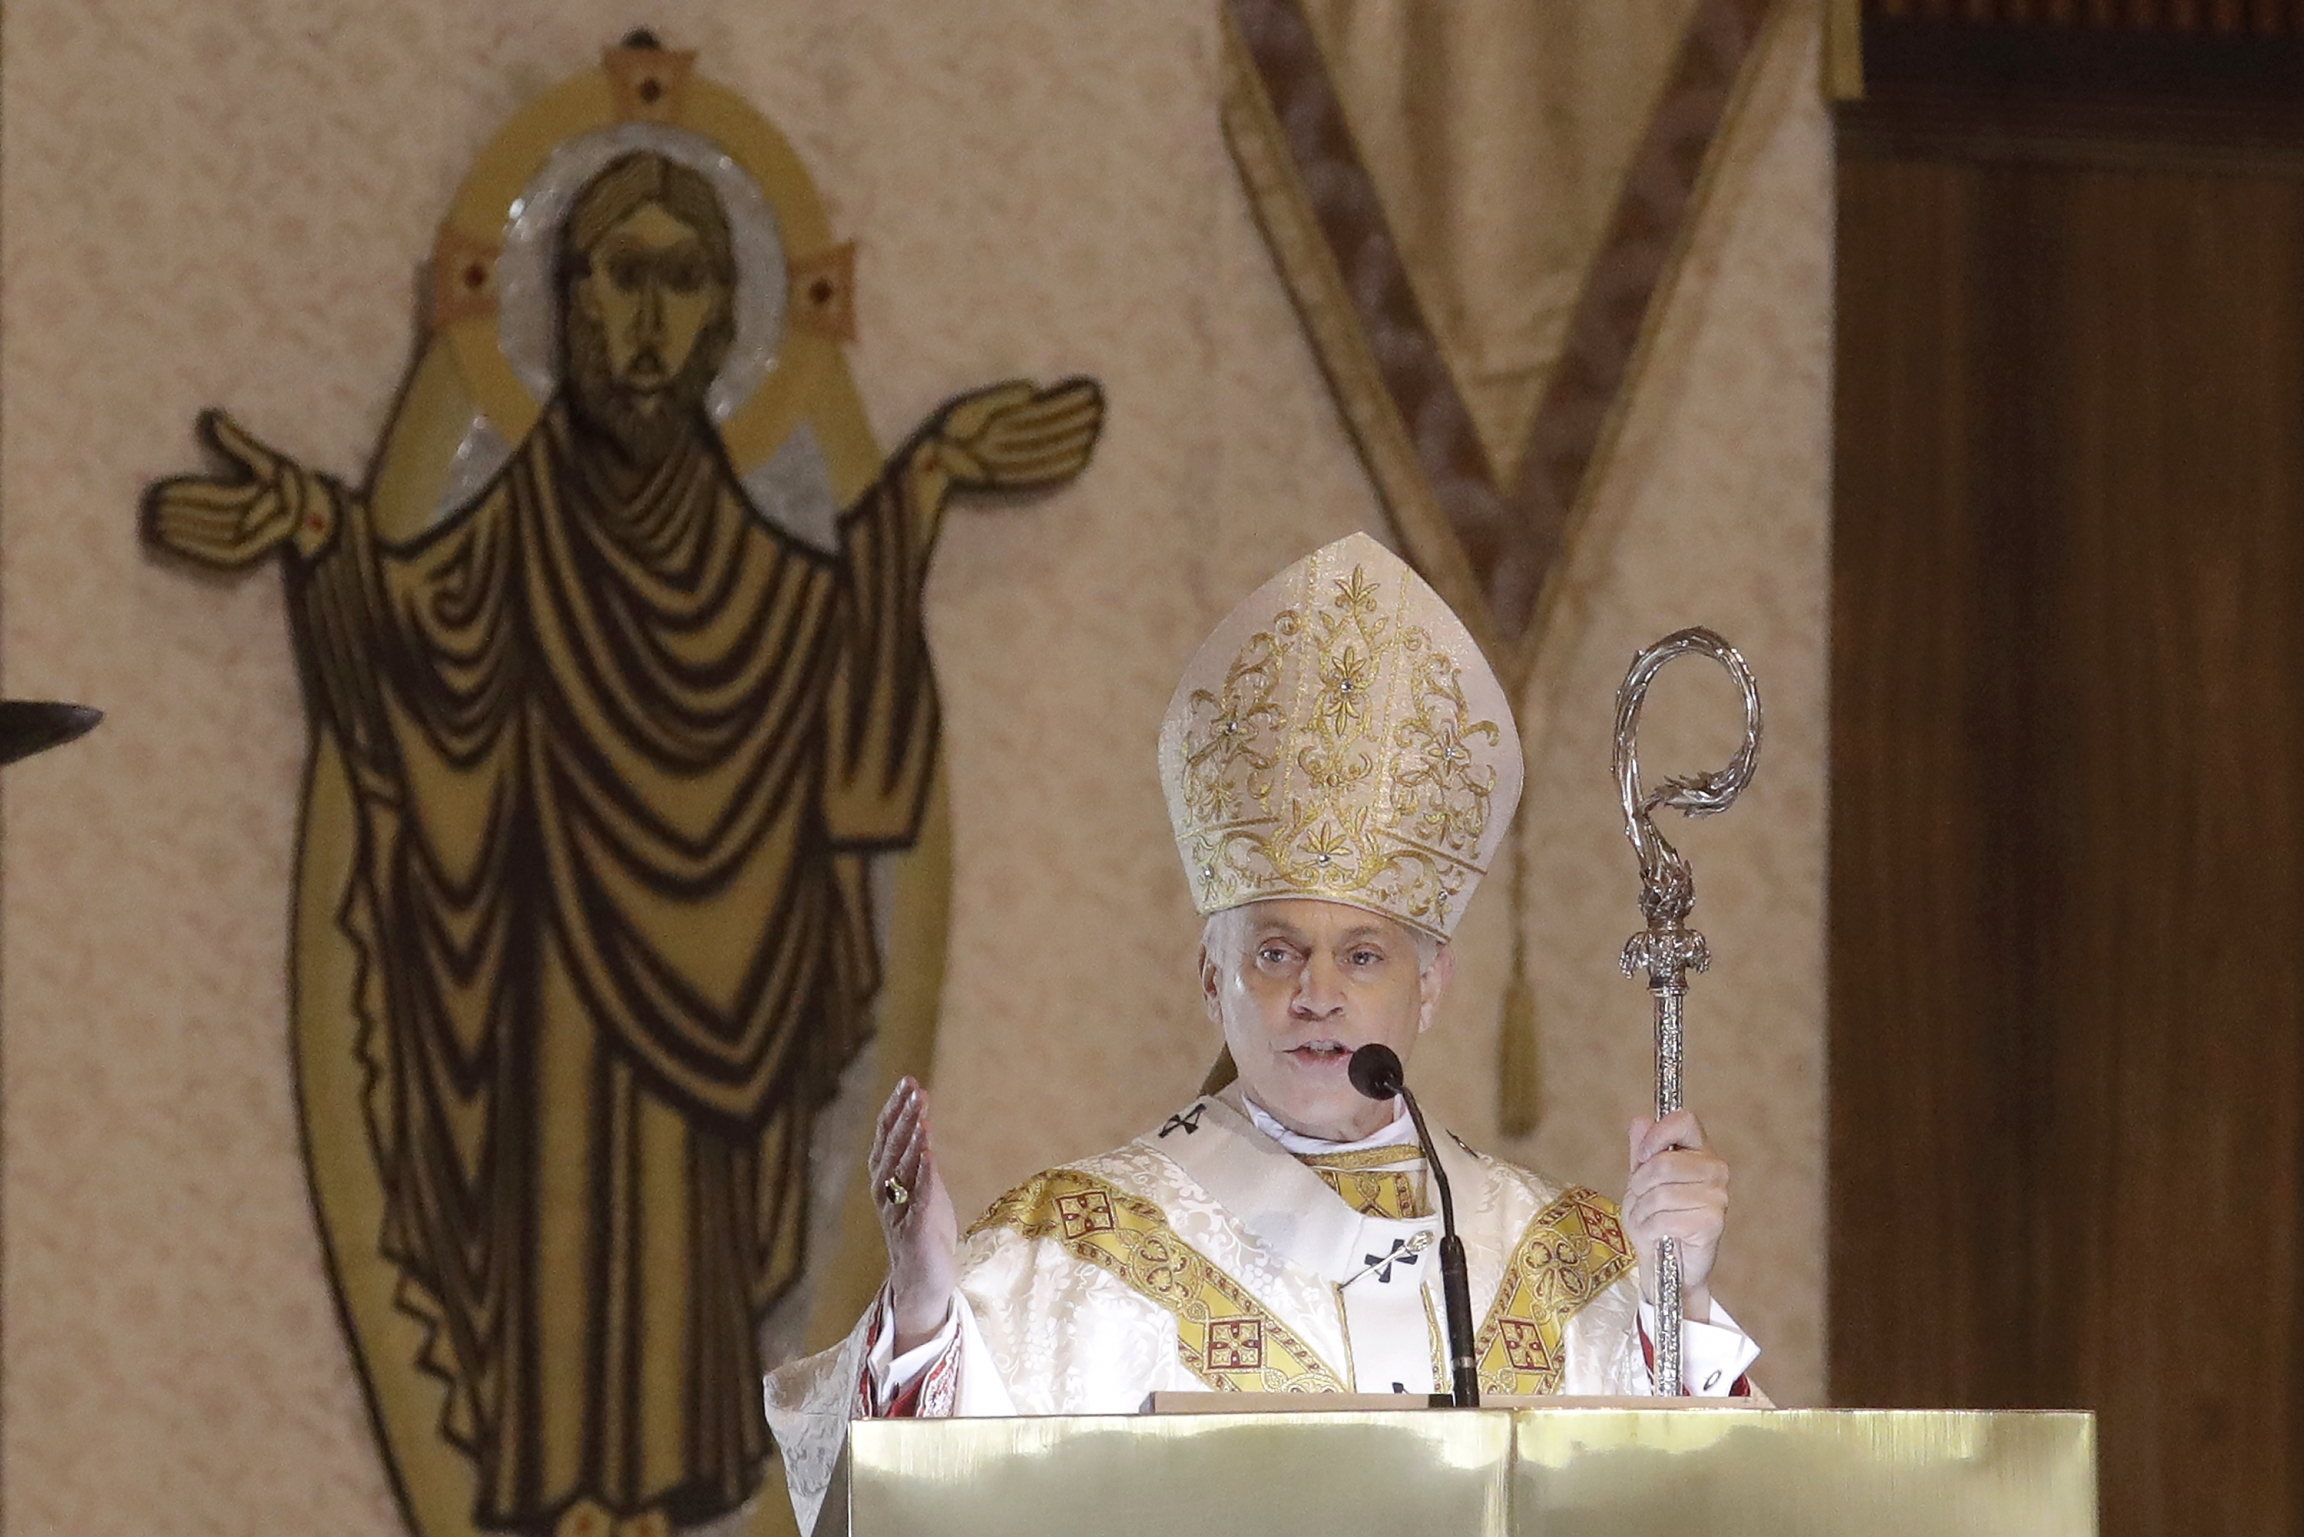 San Francisco Archbishop Salvatore Cordileone celebrates Easter Mass, which was live-streamed, at St. Mary's Cathedral in San Francisco, April 12, 2020.